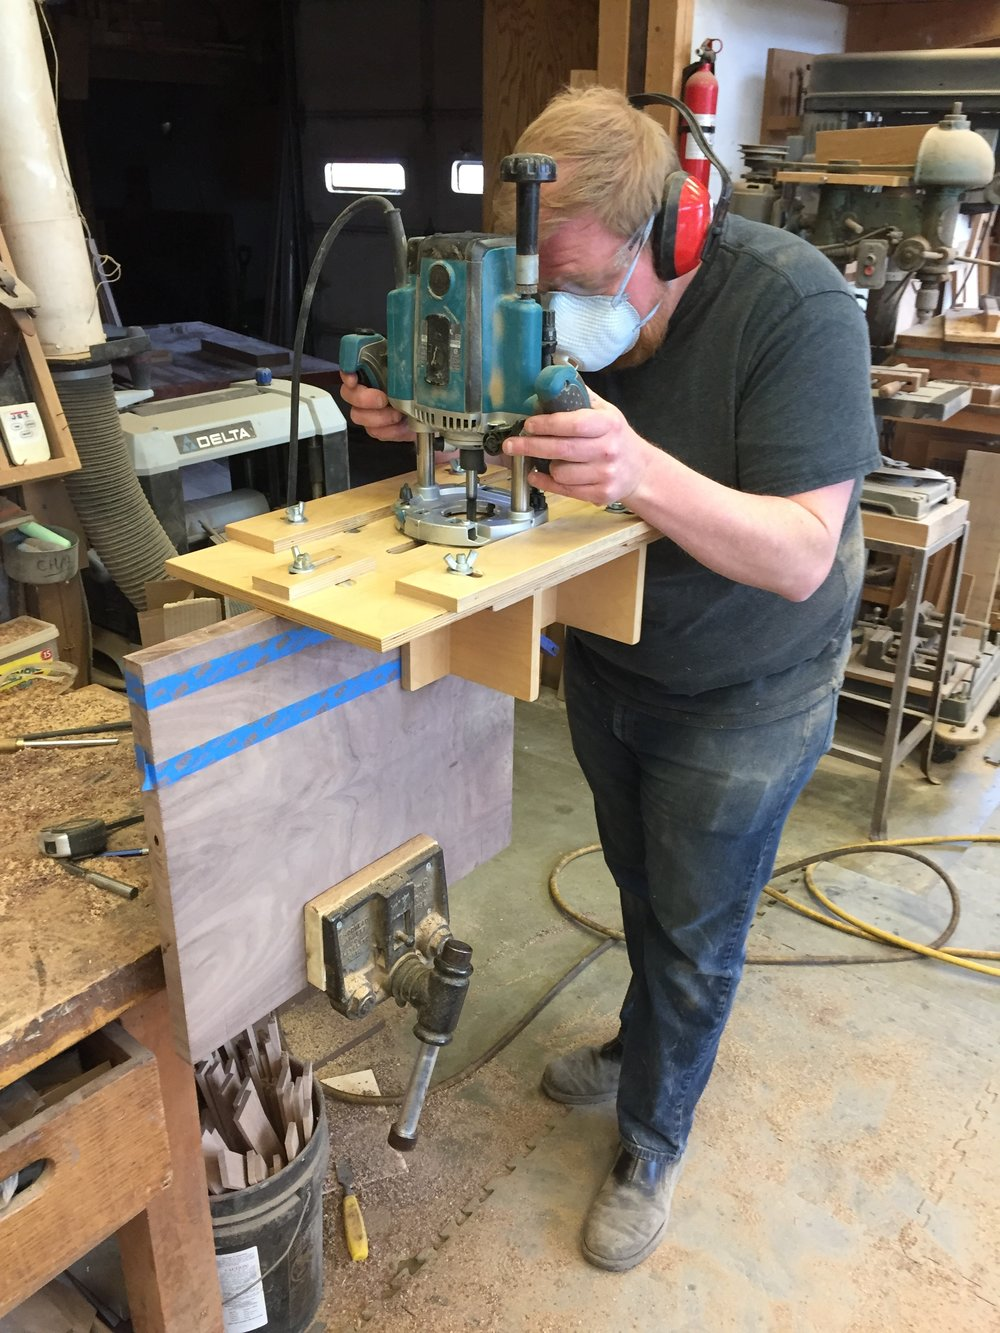 Routing floating tenon mortises